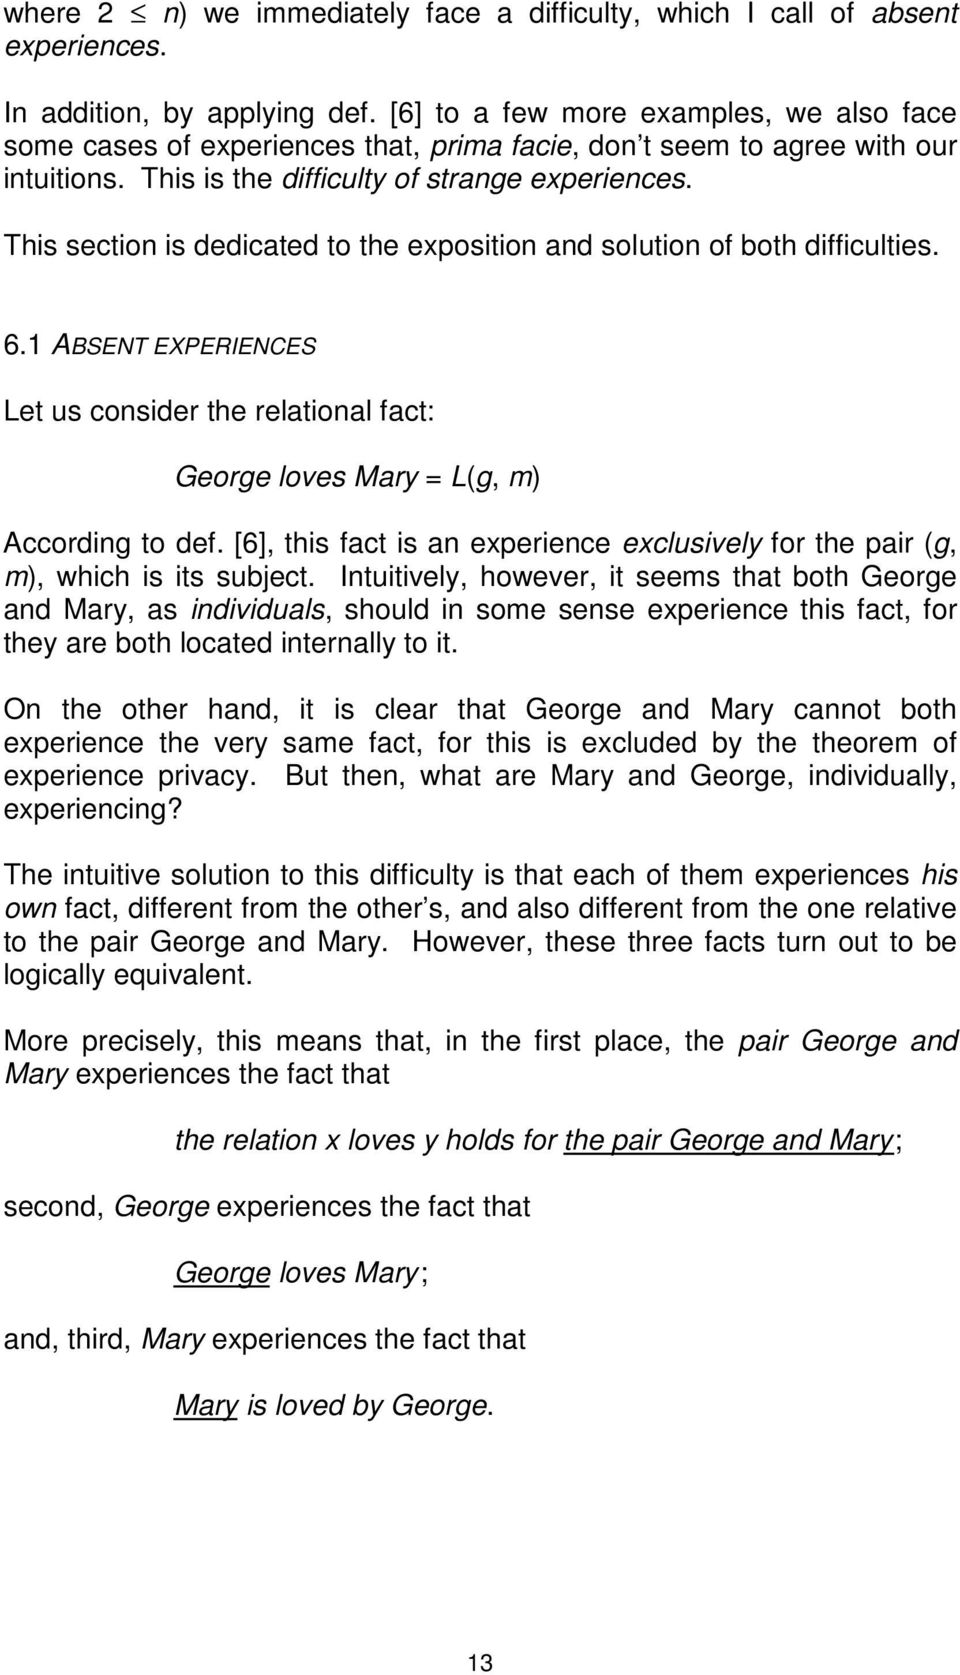 This section is dedicated to the exposition and solution of both difficulties. 6.1 ABSENT EXPERIENCES Let us consider the relational fact: George loves Mary = L(g, m) According to def.